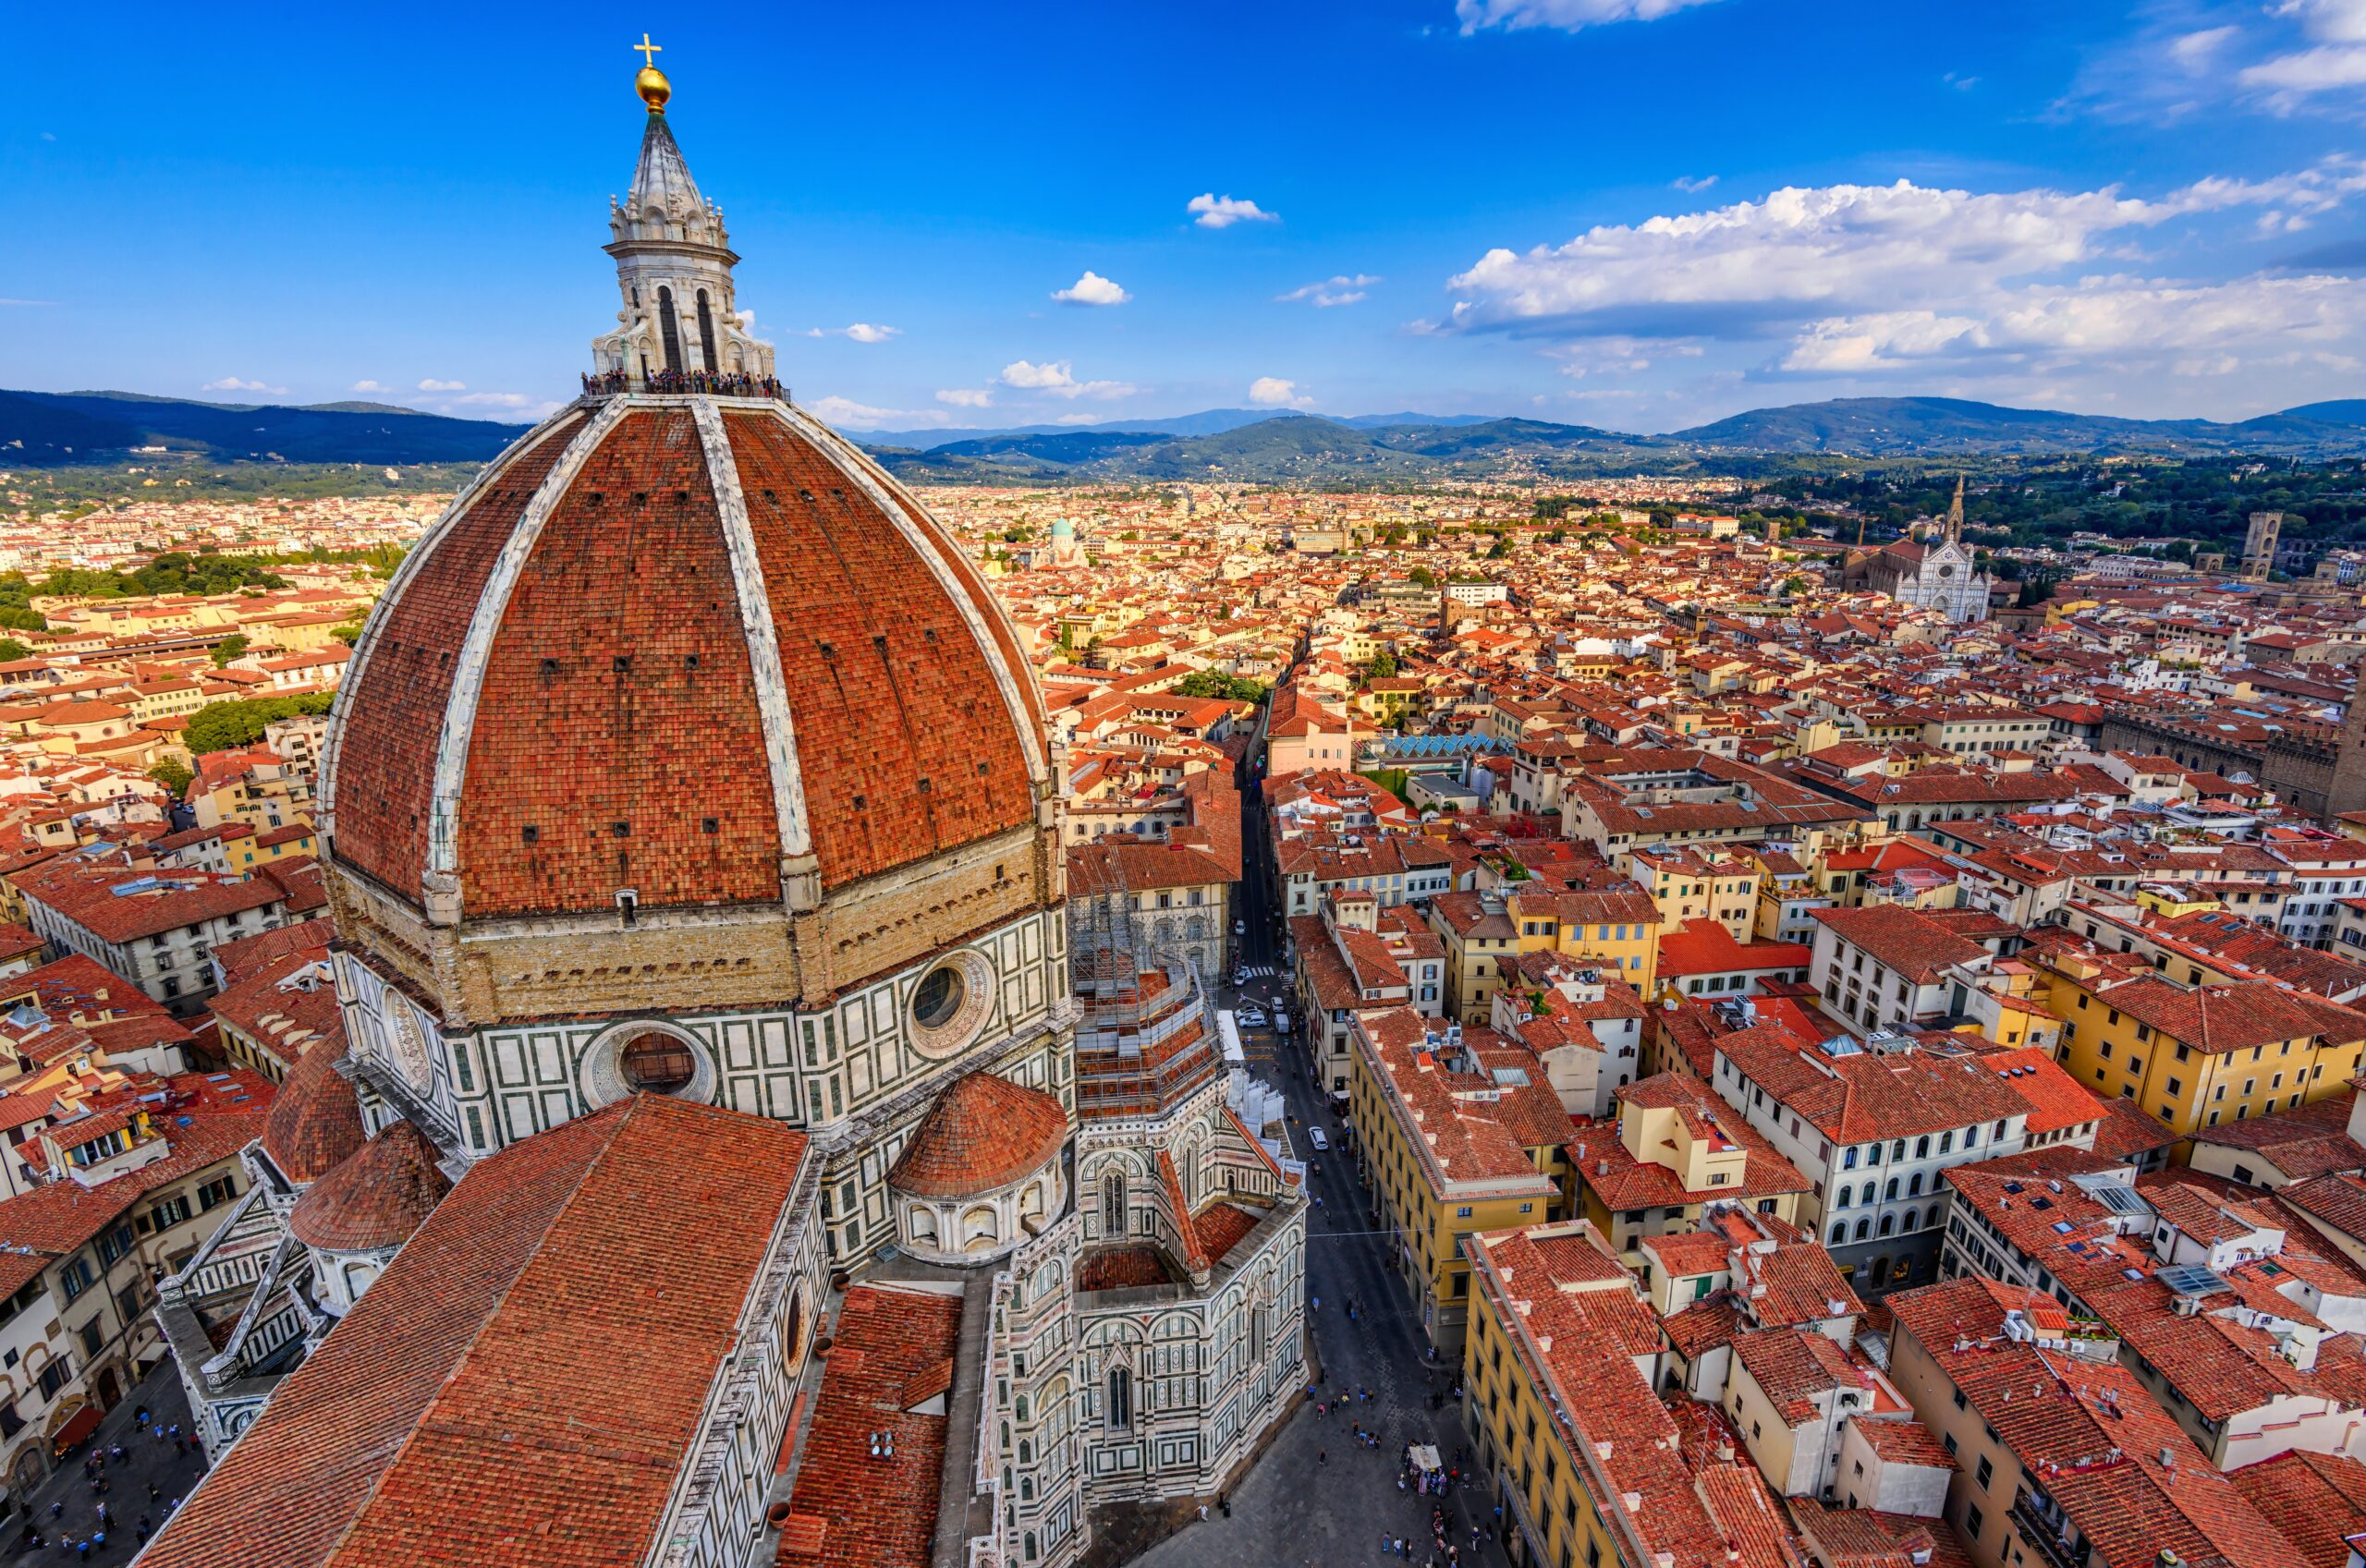 Florence Duomo. Basilica di Santa Maria del Fiore (Basilica of Saint Mary of the Flower) in Florence, Italy. Florence Duomo is one of main landmarks in Florence